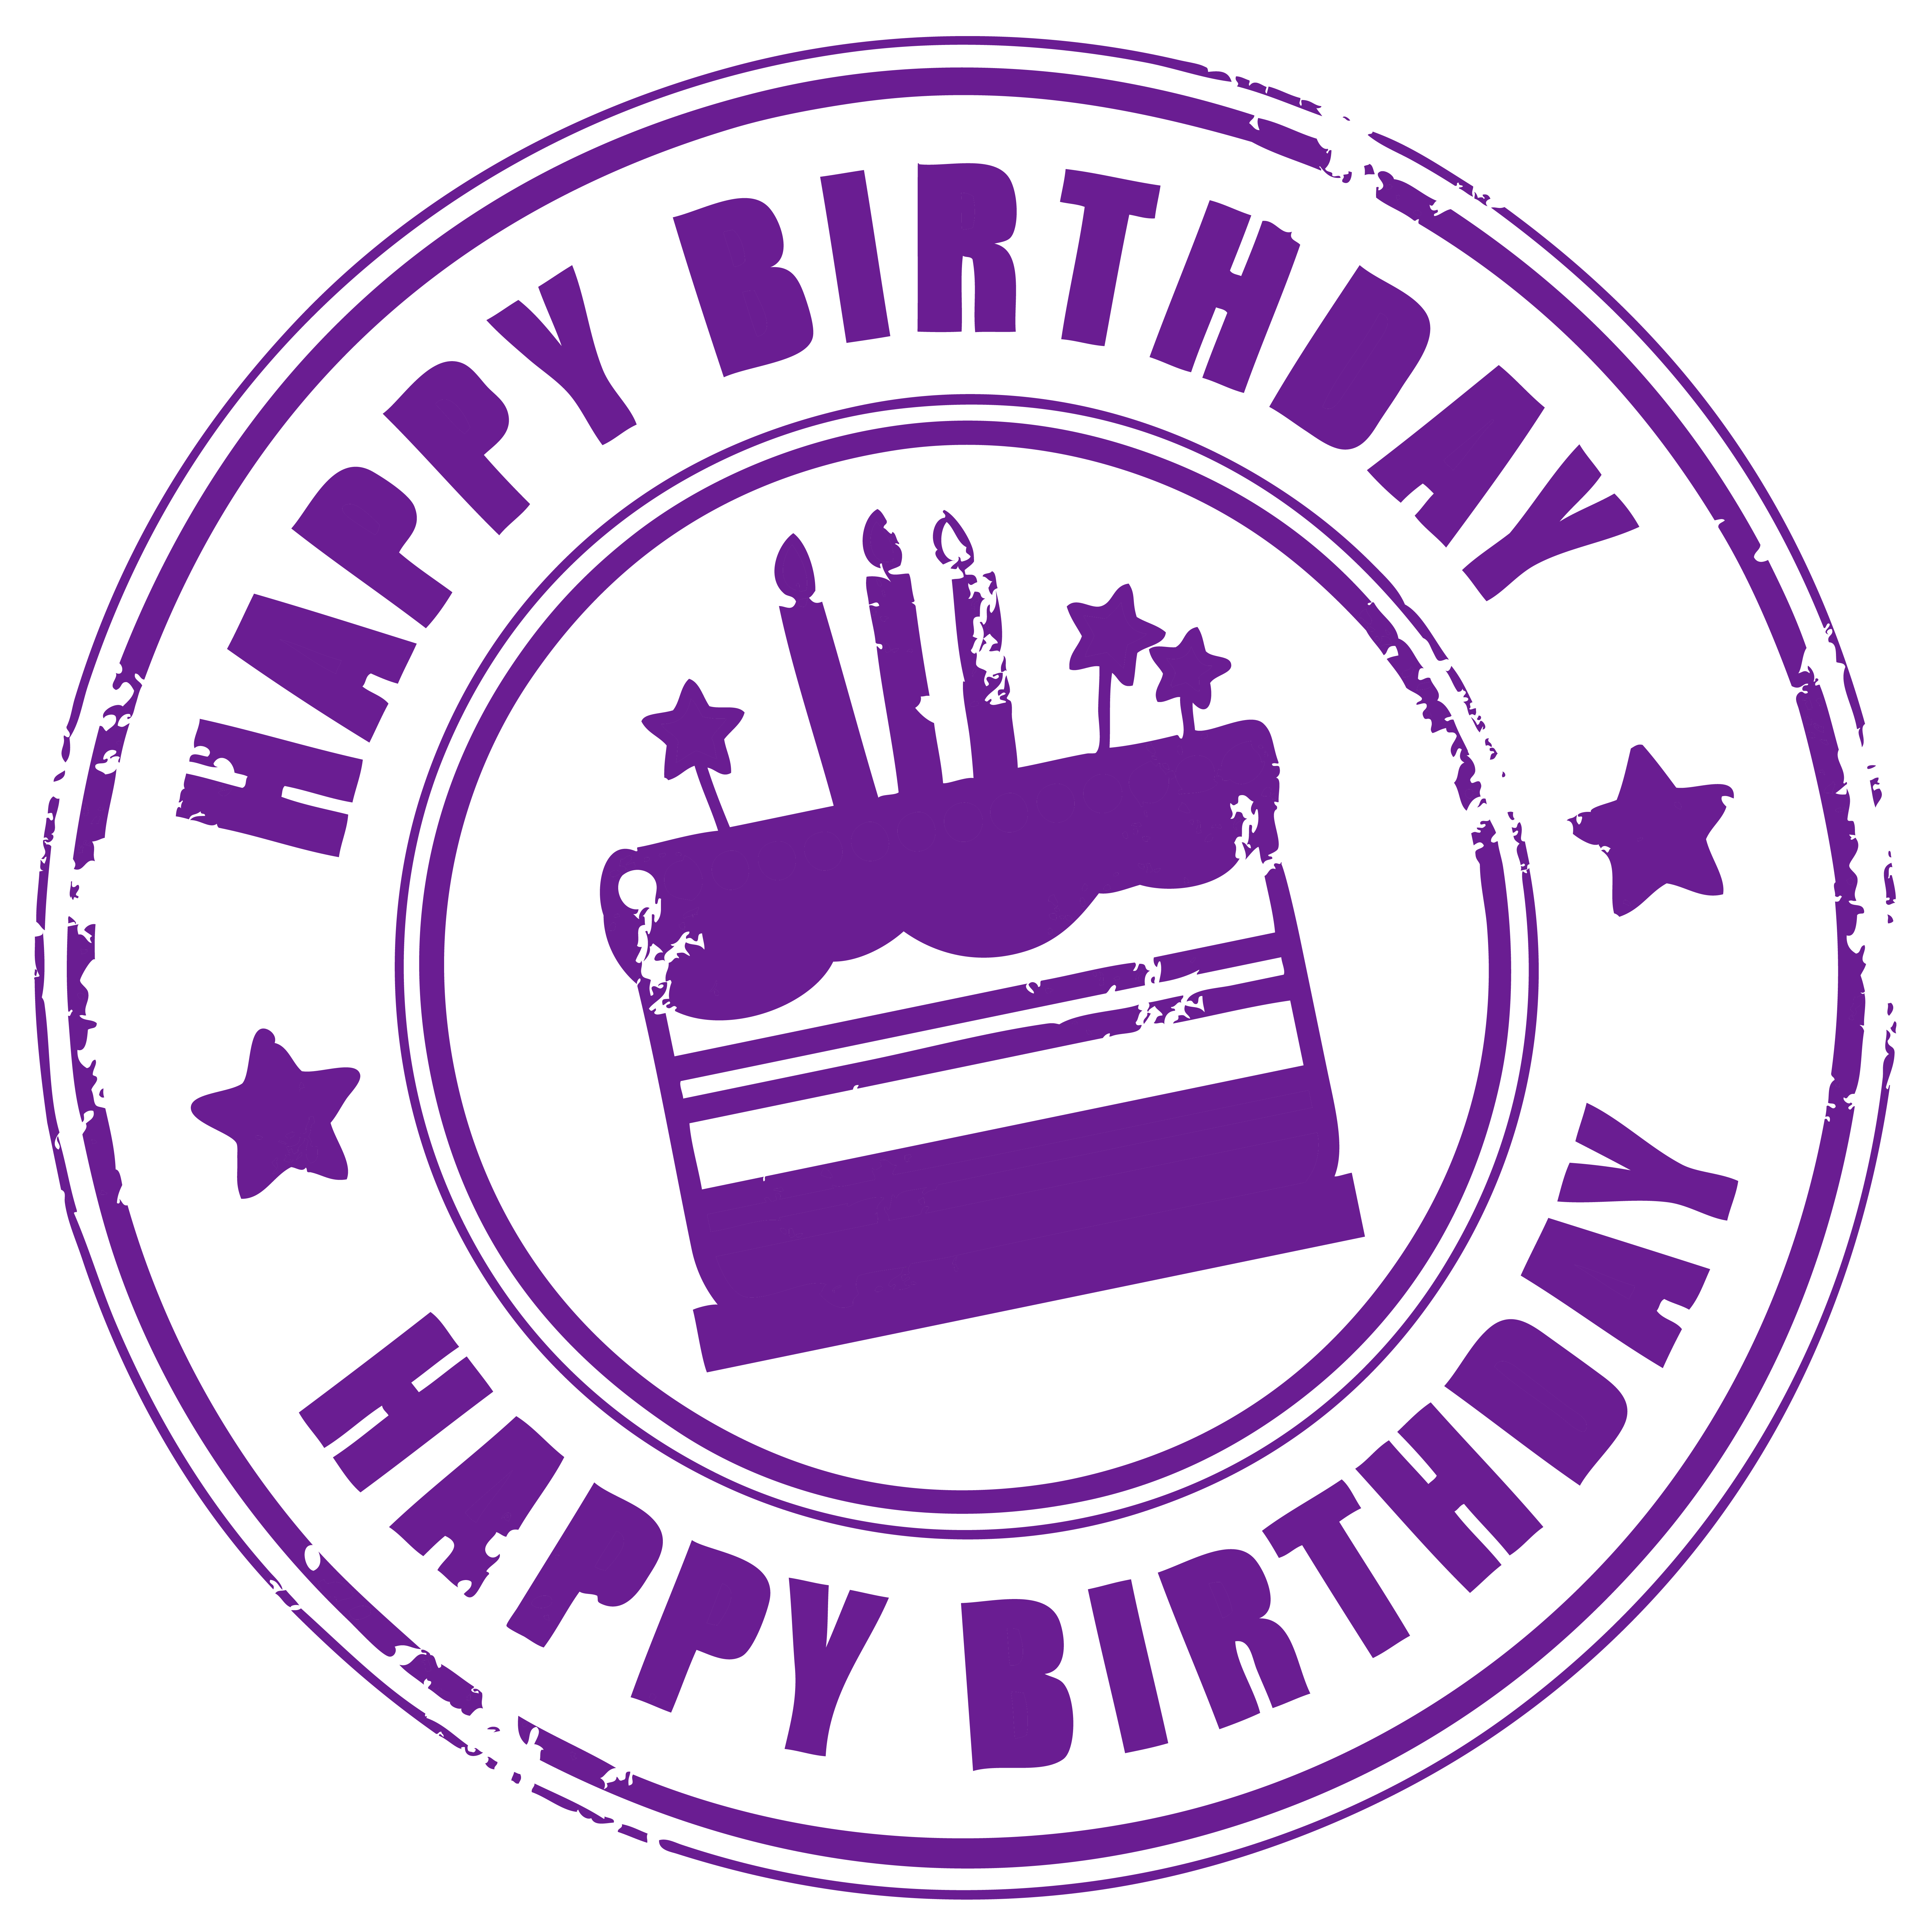 Happy birthday png picture. Stamp clipart svg download